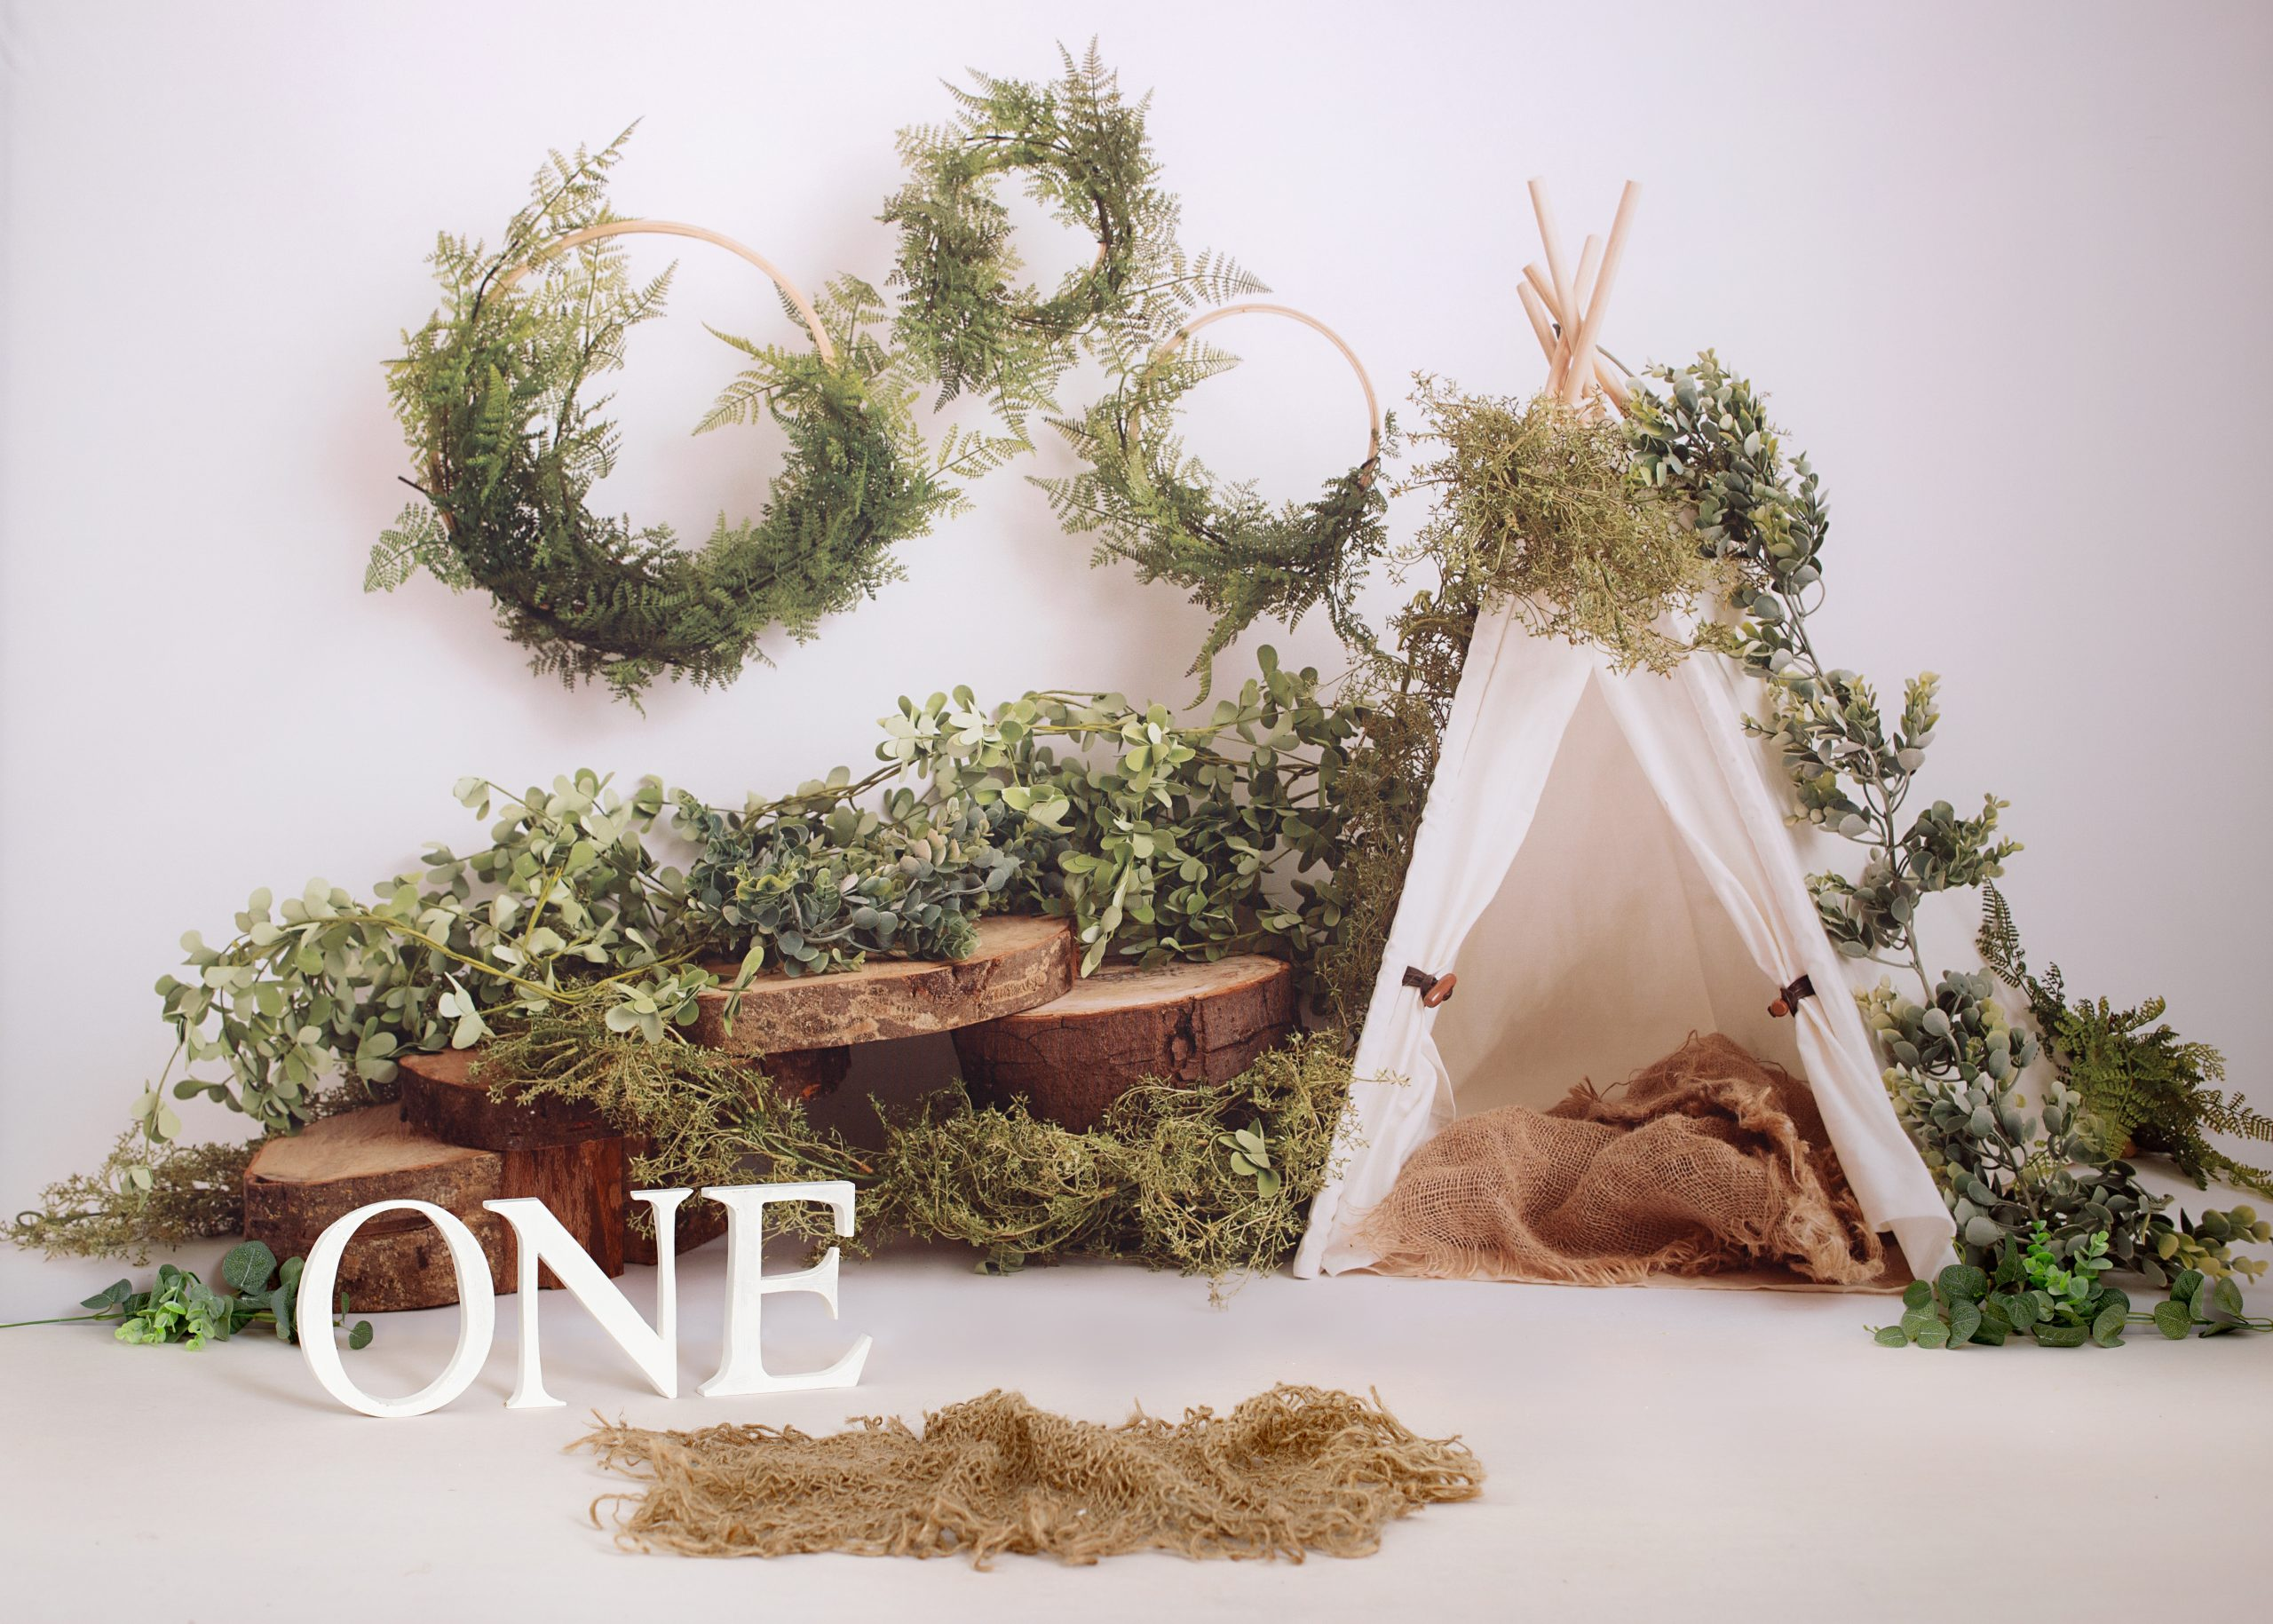 tent and greenery